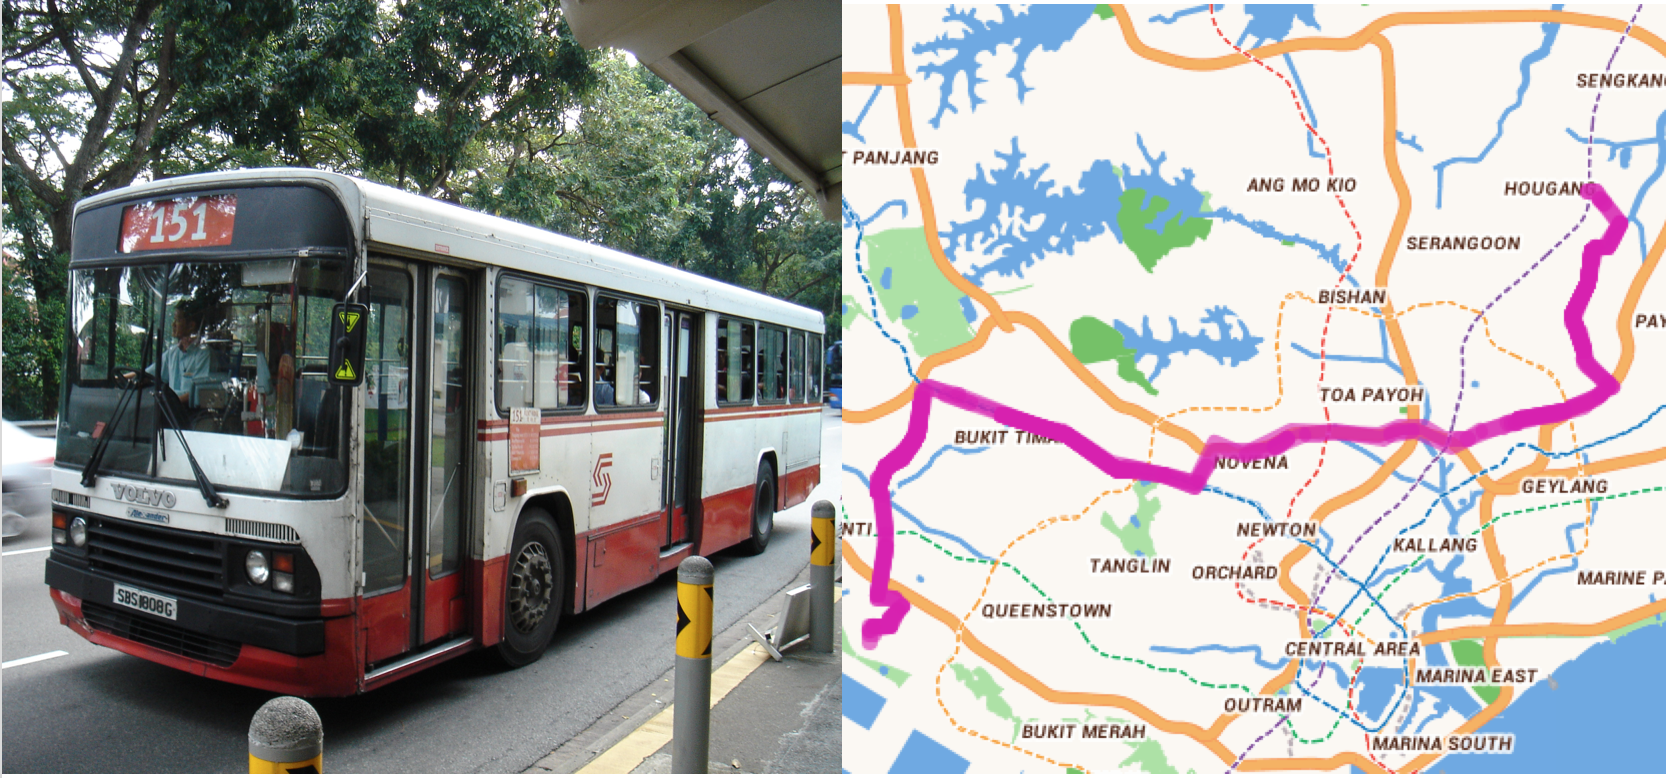 S Pore S Bus Numbers Not Entirely At Random Assigned Based On Some Patterns Mothership Sg News From Singapore Asia And Around The World